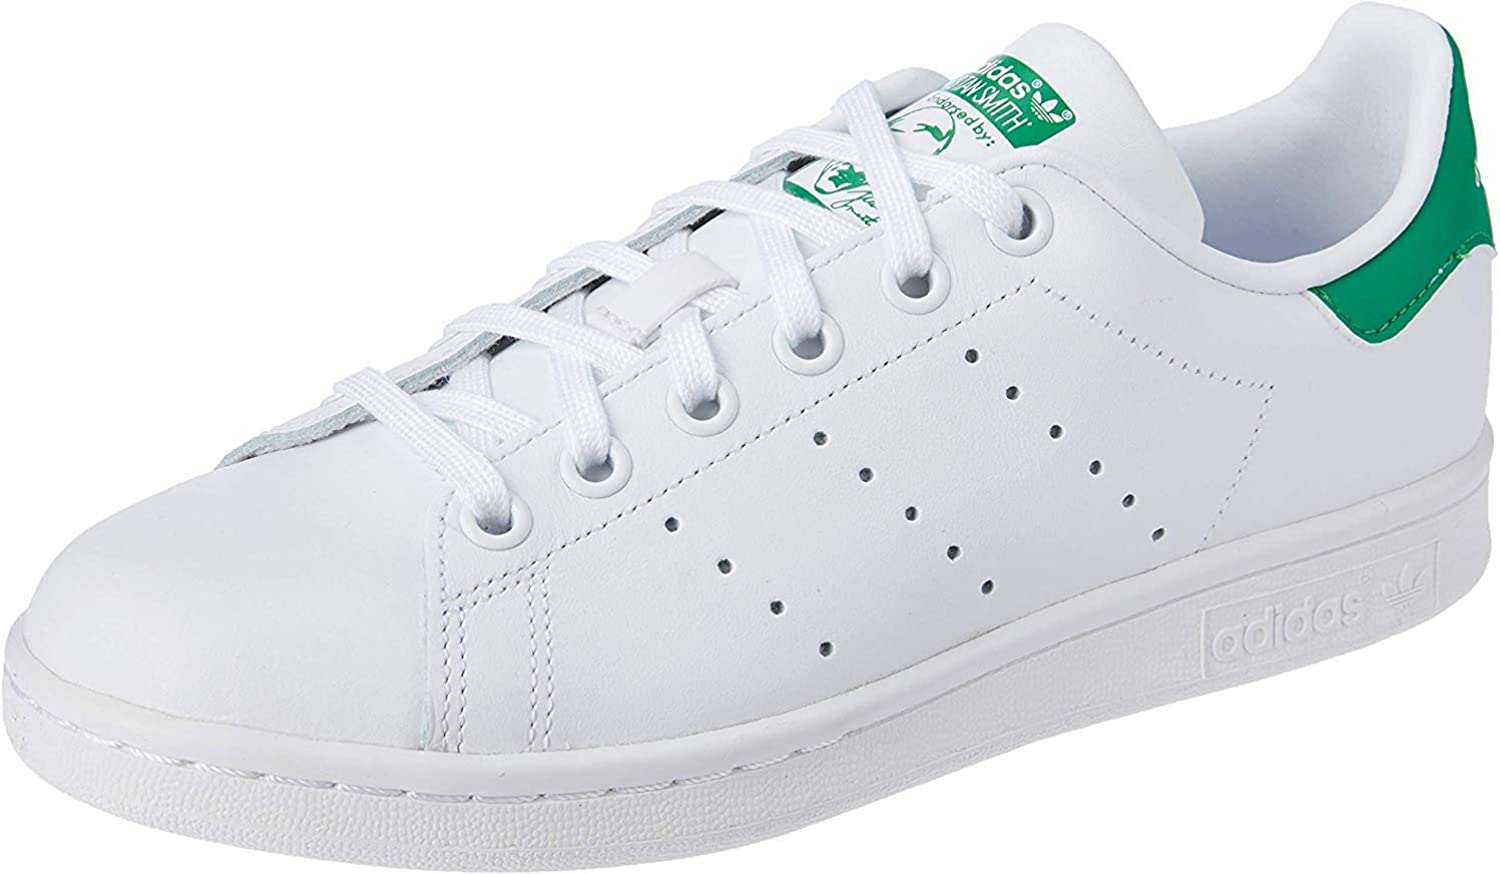 adidas Originals Adidas Stan Smith J M20605, Zapatillas de Gimnasia Unisex Adulto